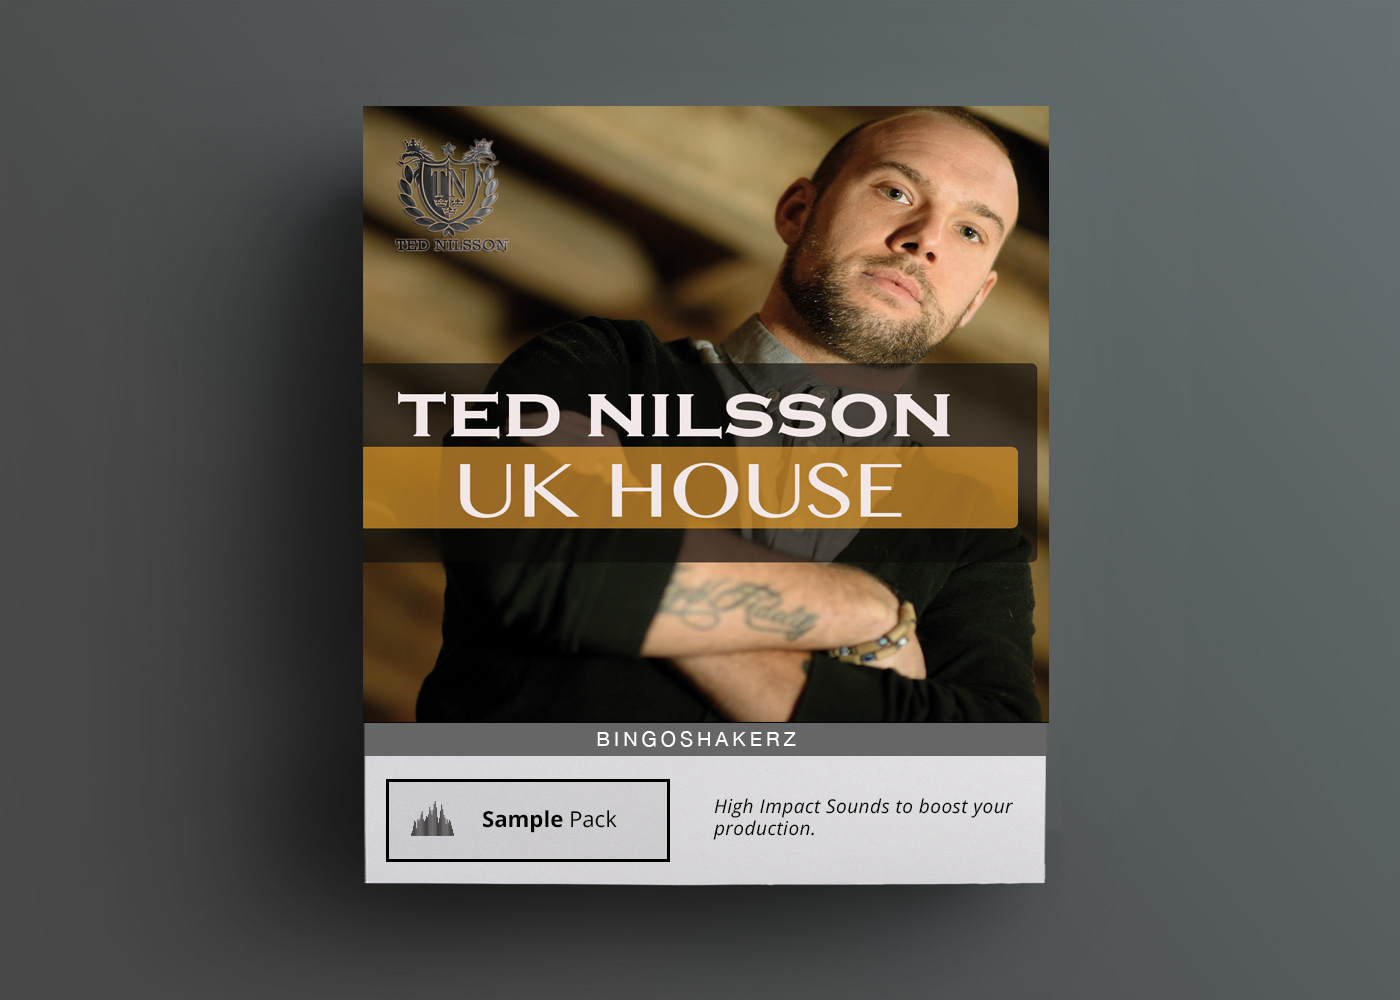 ted nilsson